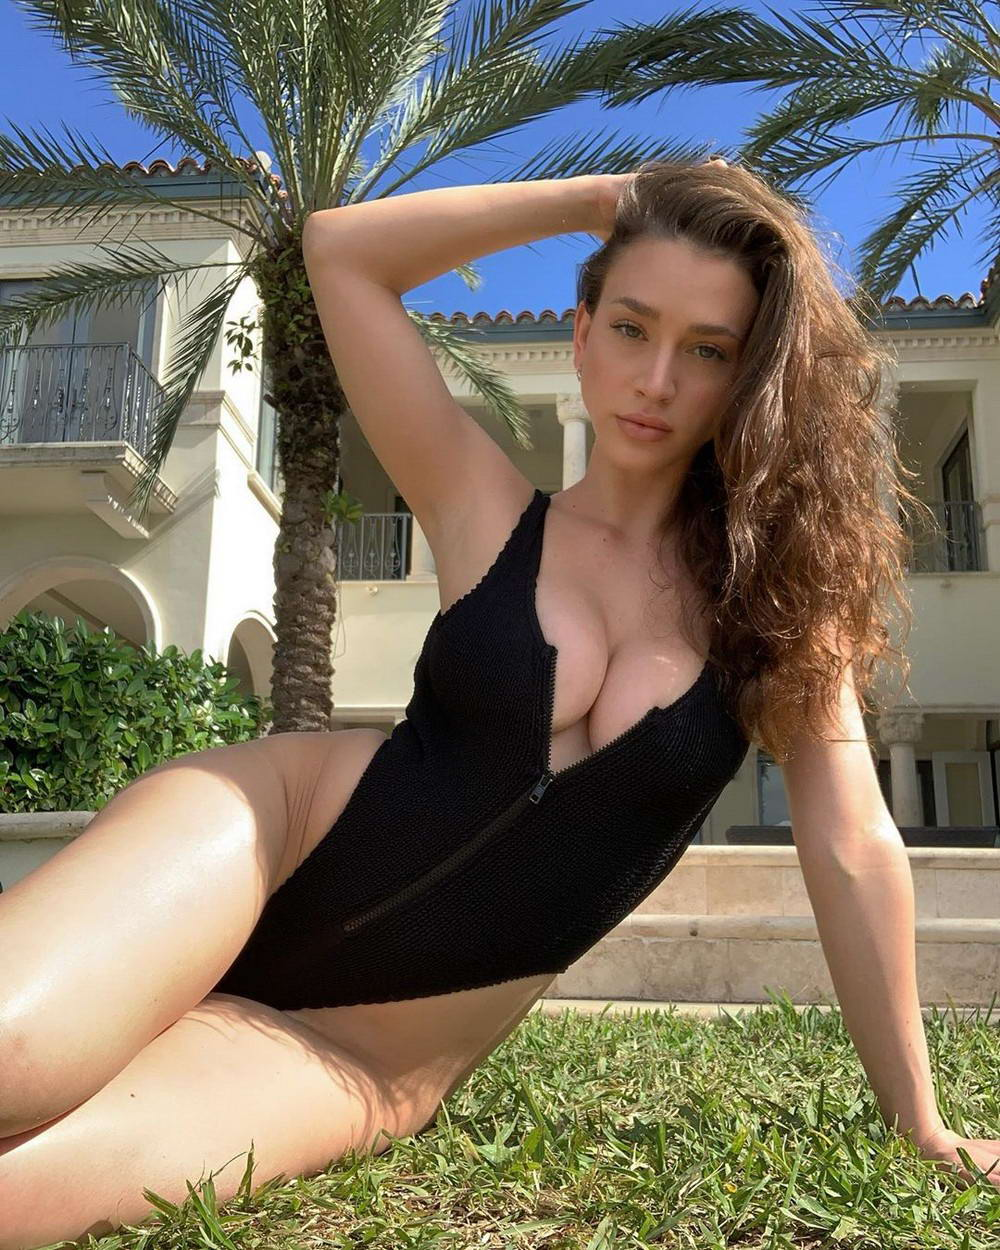 Busty Girls Don't Hide Their Hot Cleavages (36 Photos)